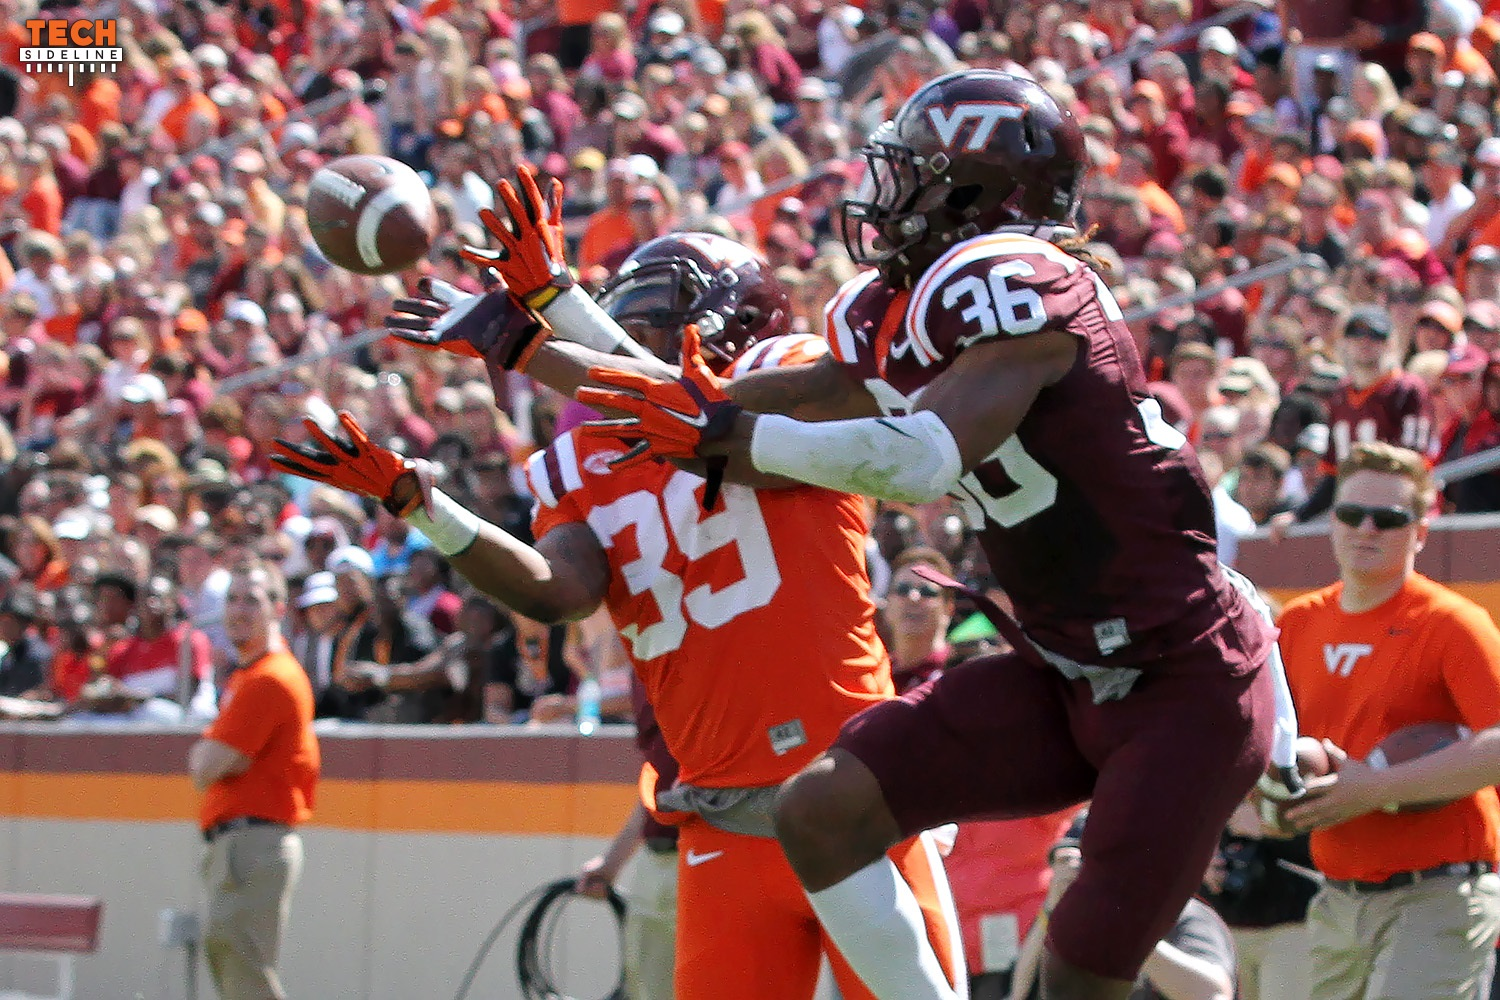 virginia tech essay virginia tech u s offense makes strides in